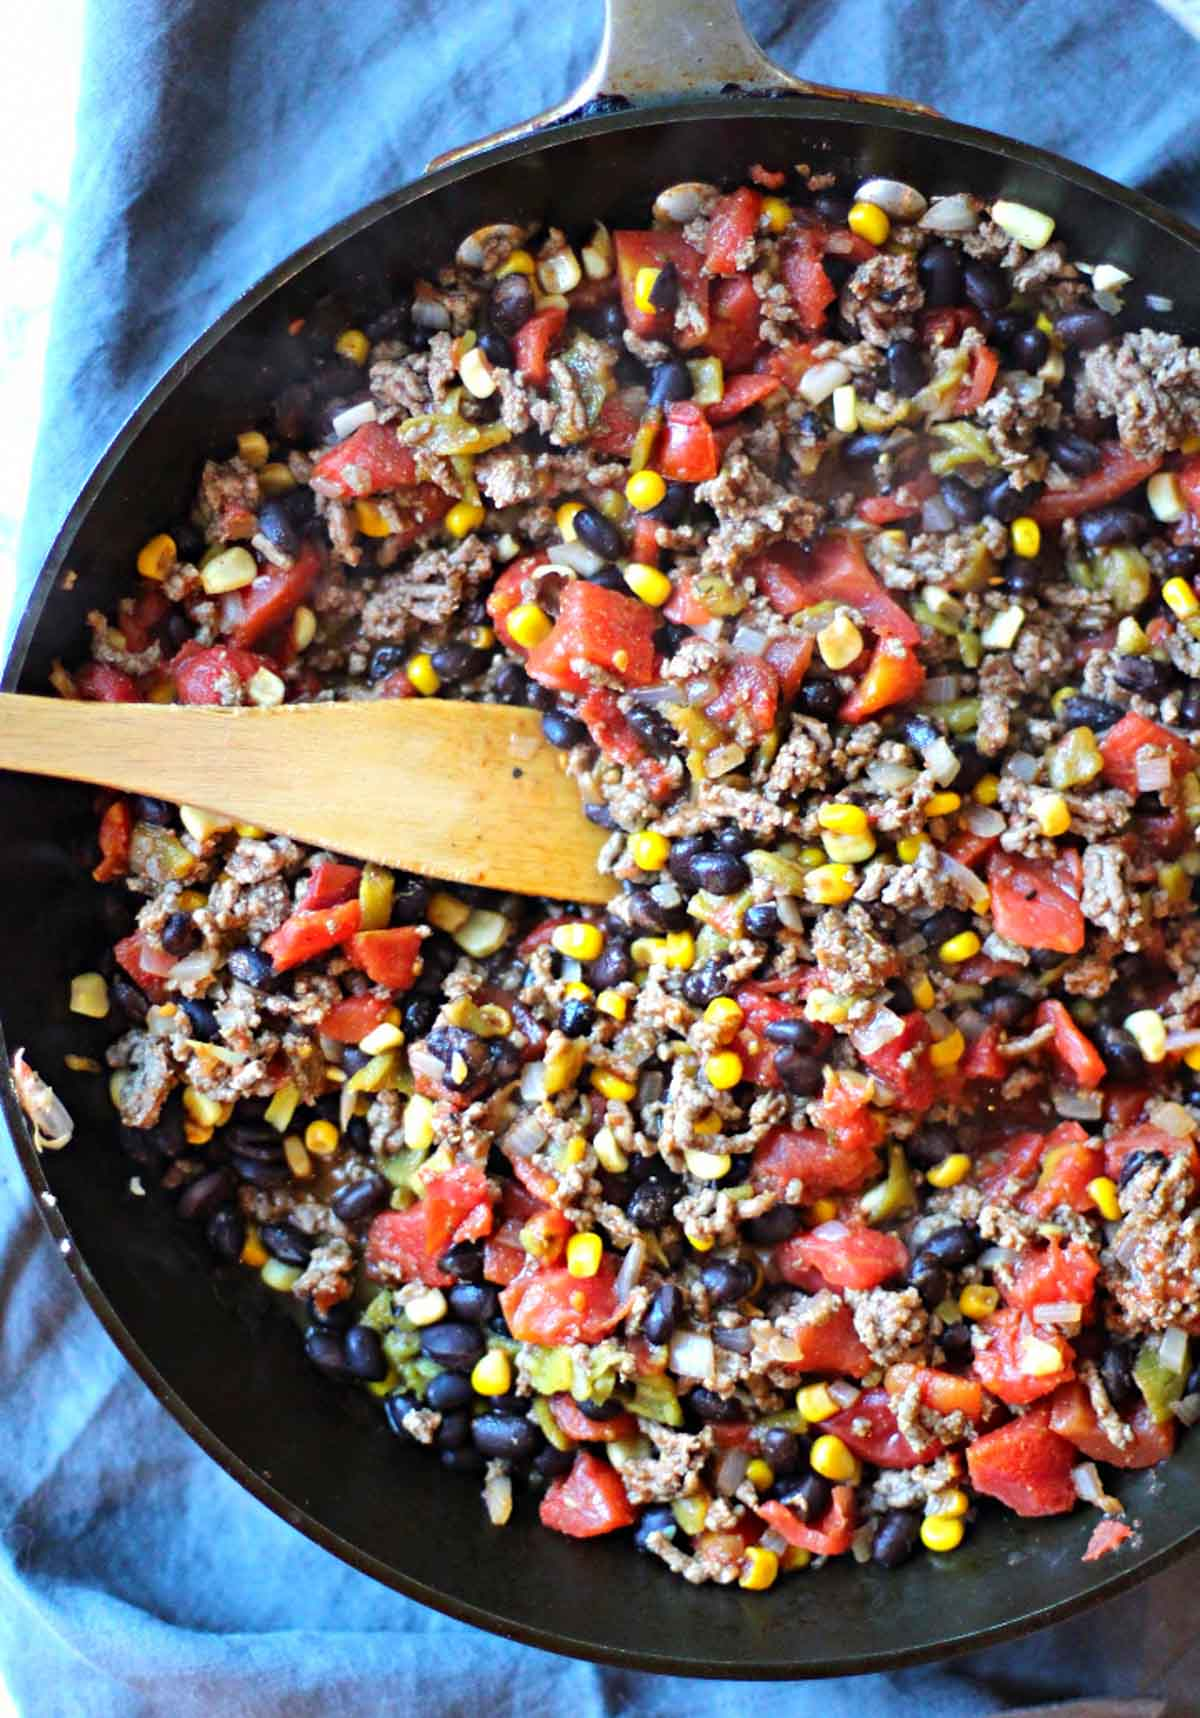 frying ground beef, tomatoes, beans and corn for a mexican casserole